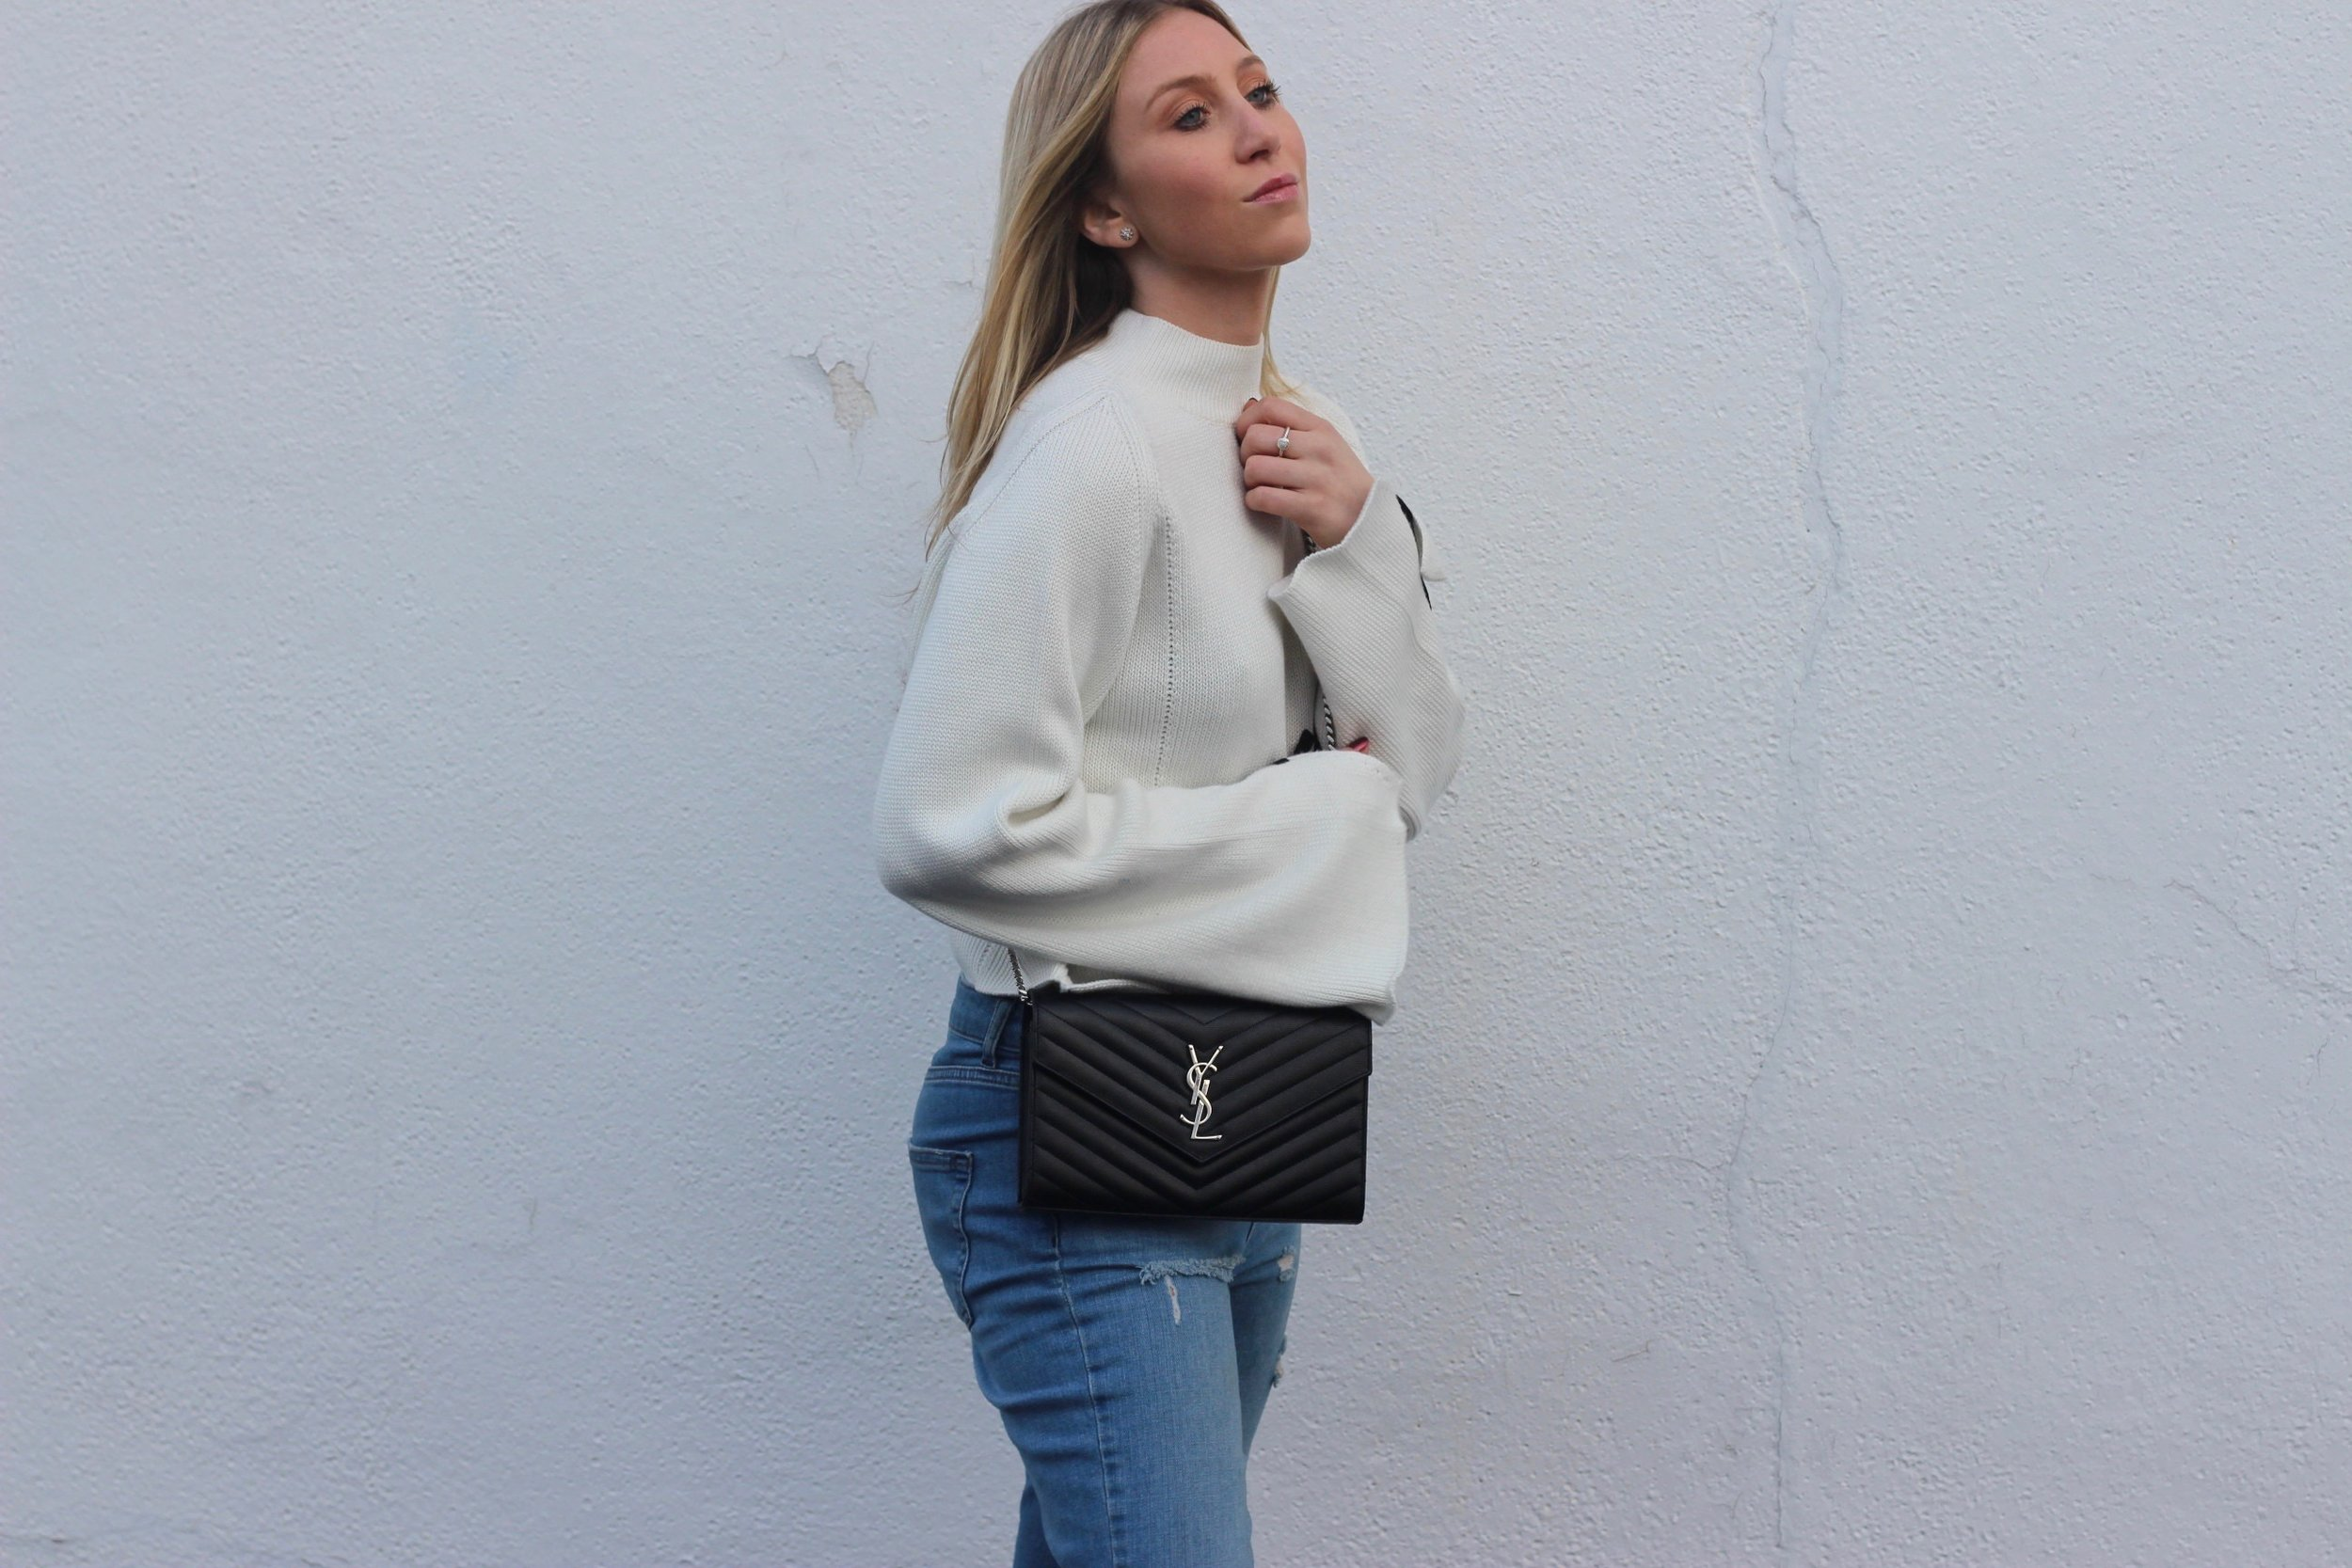 Ysl cross body bag and statement sweater by Au Courant Life